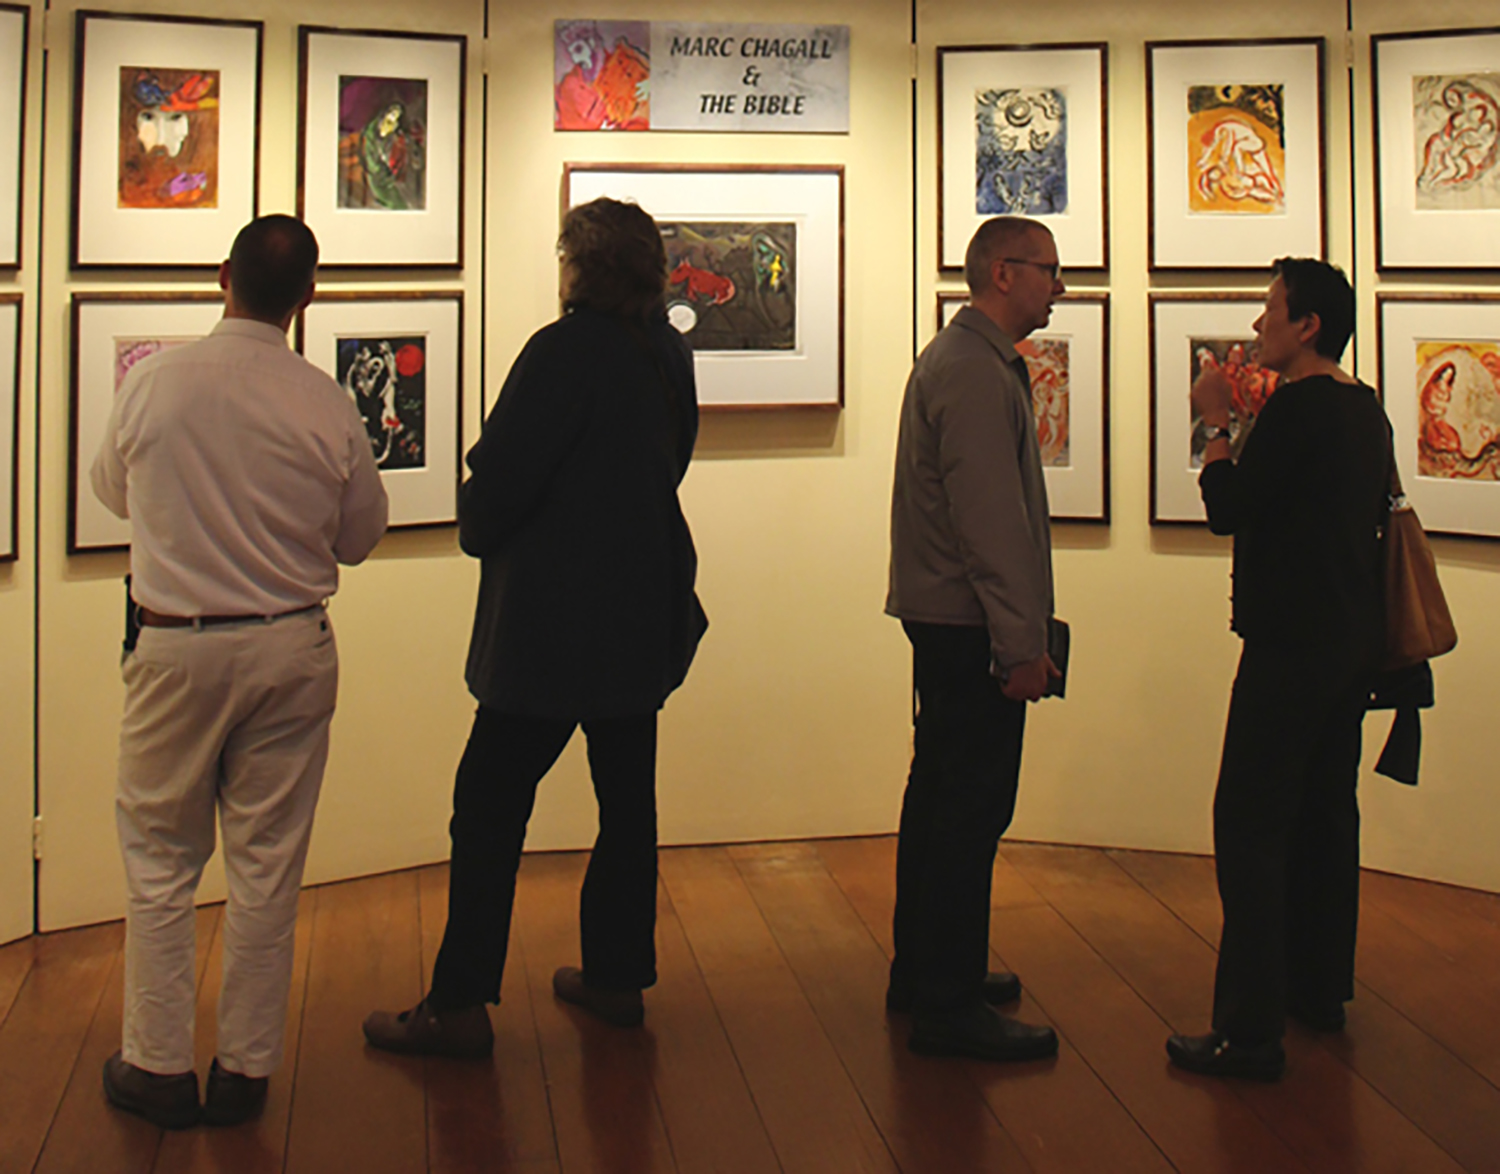 Viewers enjoying the exhibition  Marc Chagall and the Bible .